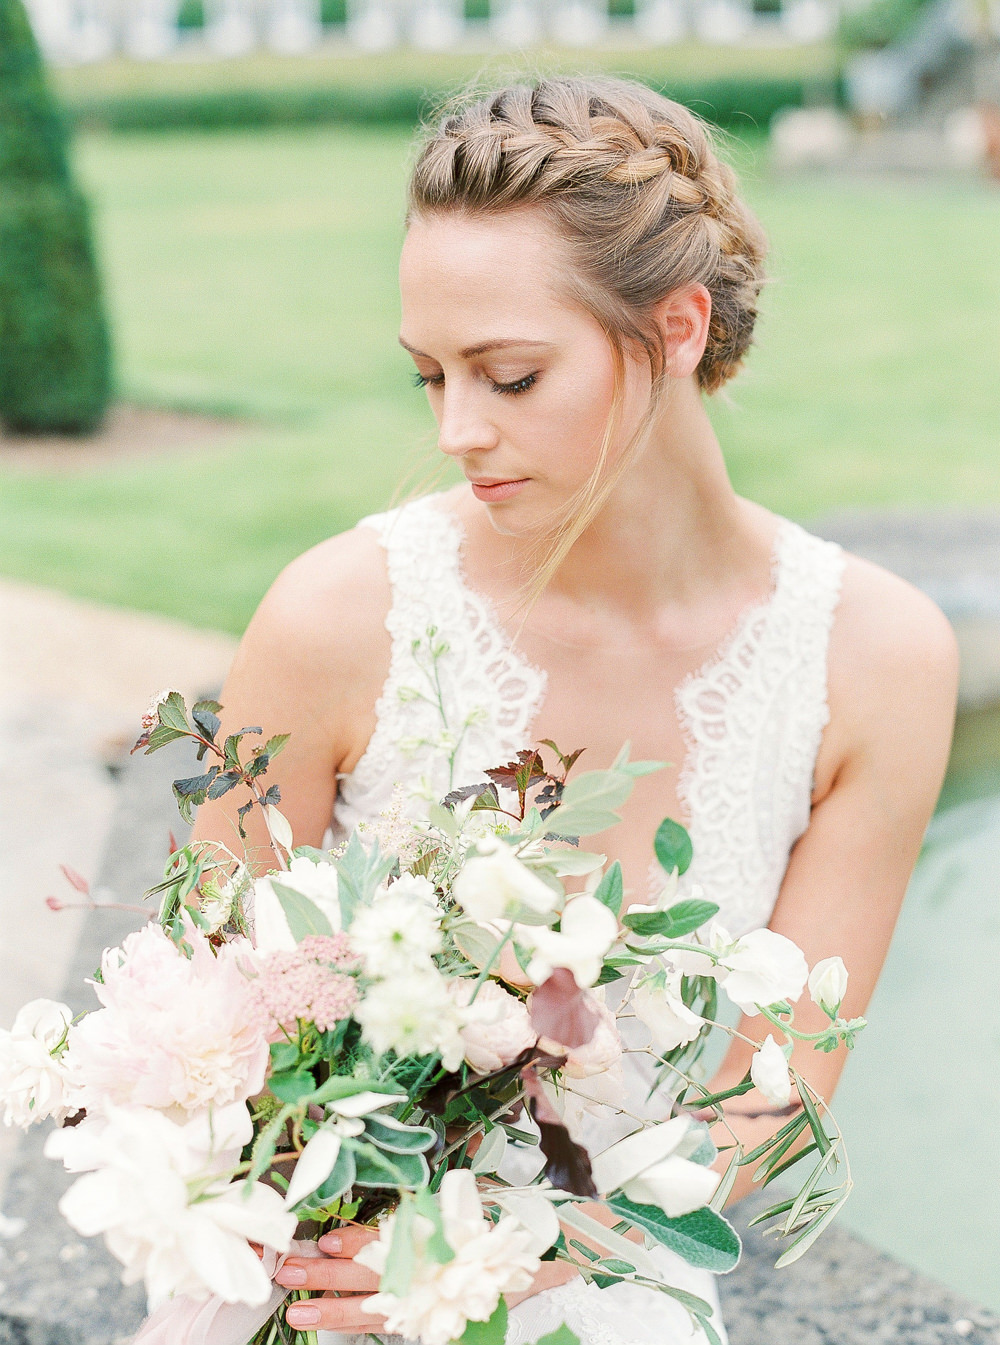 Bride with plaits and bouquet